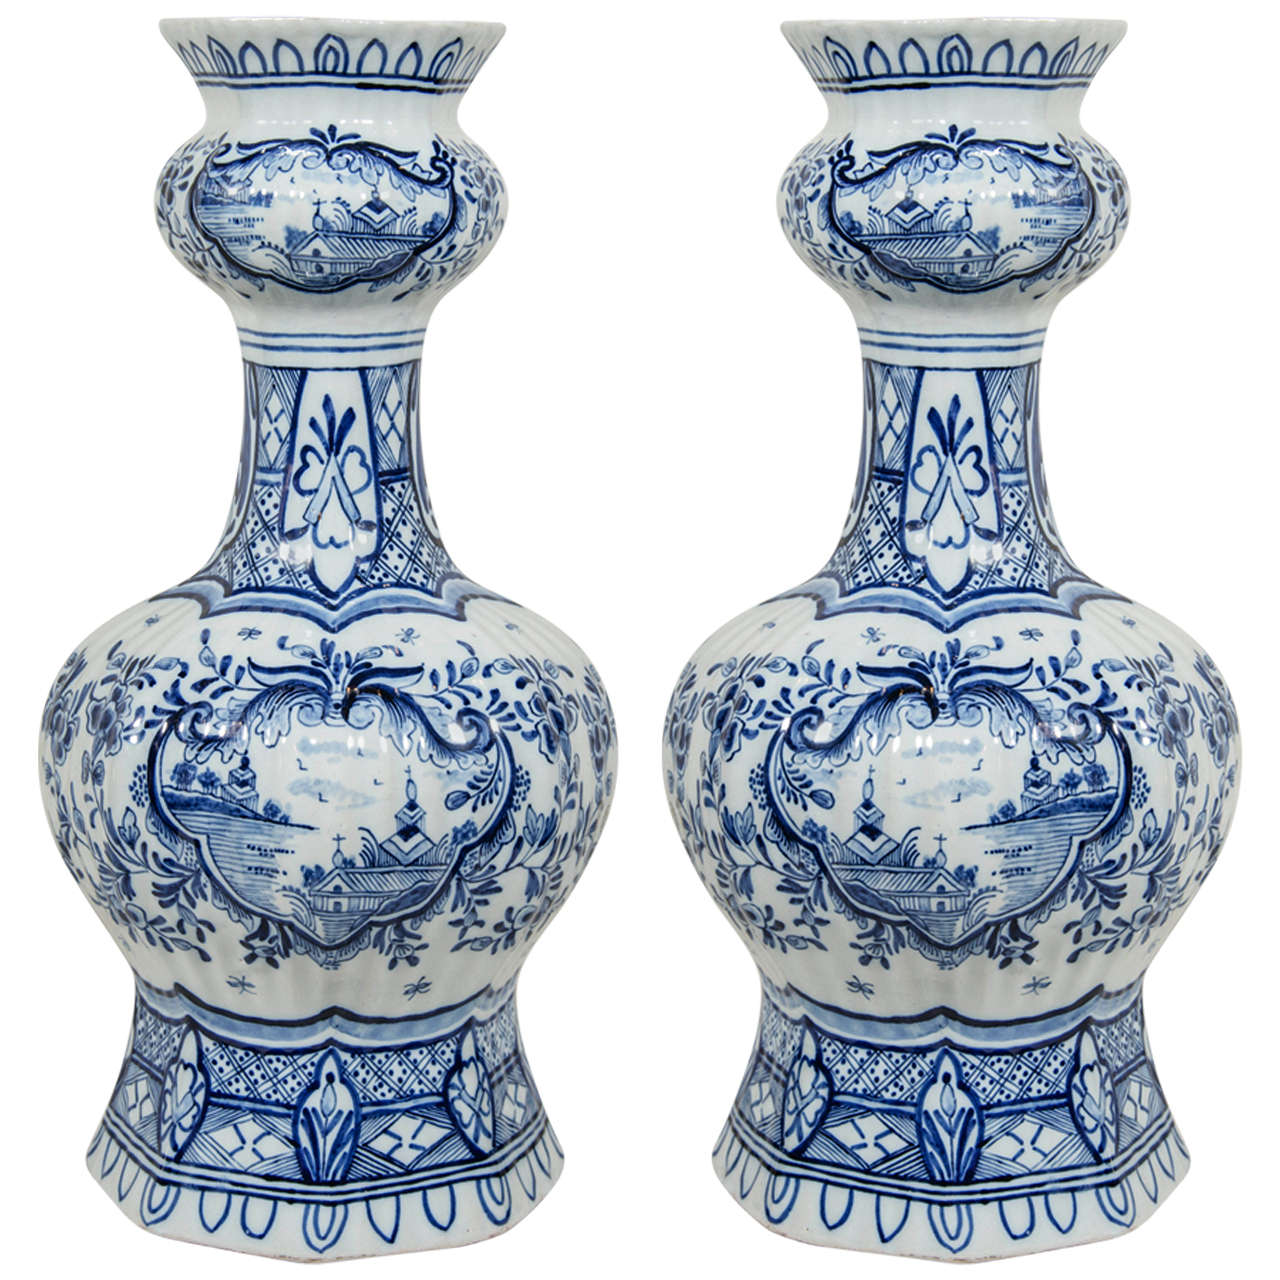 Pair of blue and white dutch delft vases with chinoiserie scenes pair of blue and white dutch delft vases with chinoiserie scenes for sale reviewsmspy